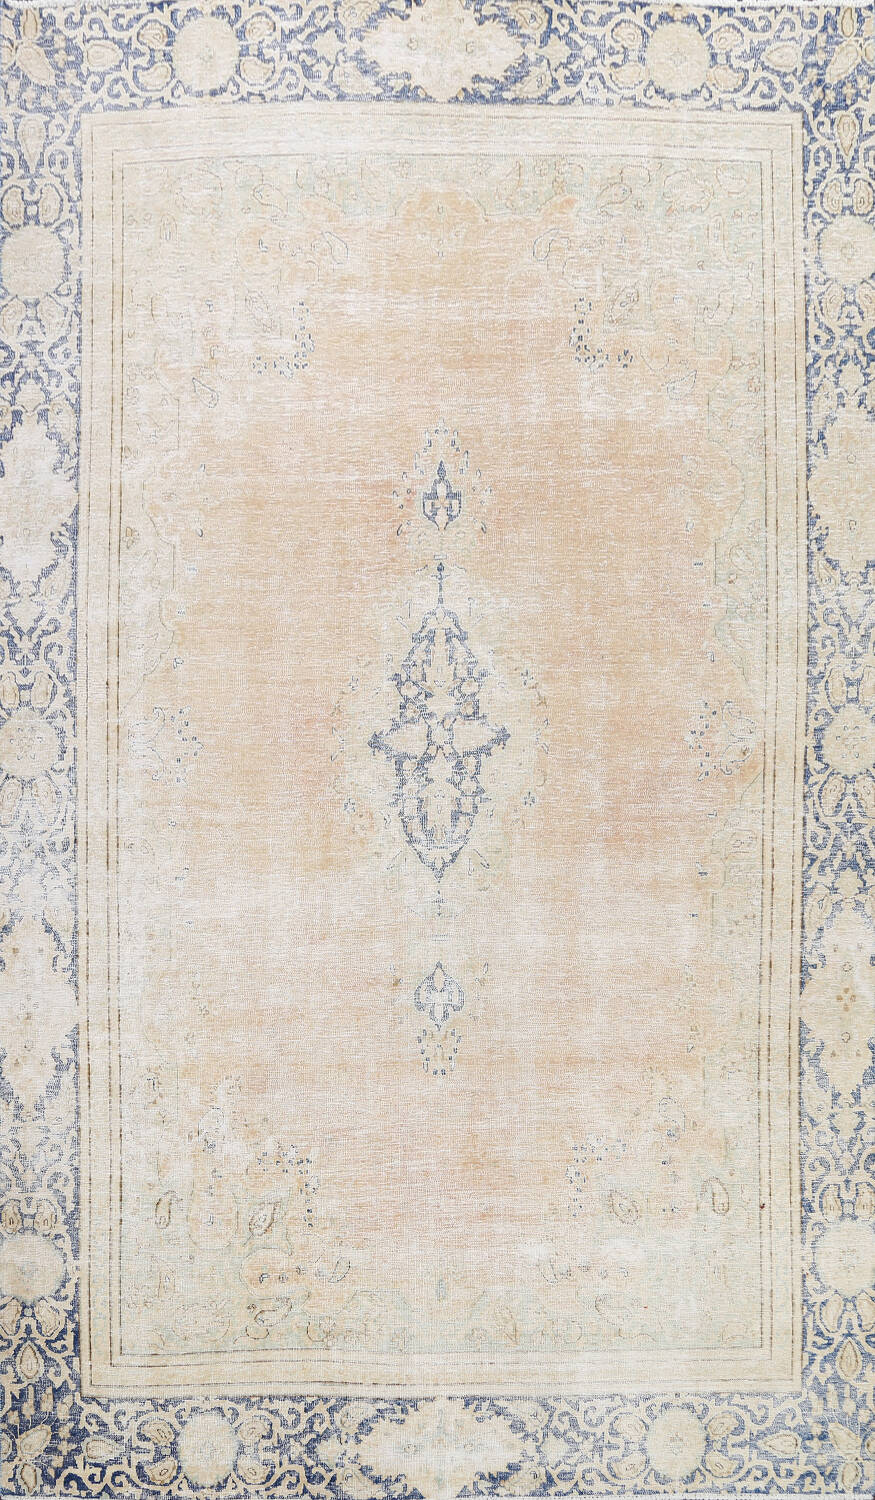 Muted Distressed Kerman Persian Area Rug 8x12 image 1